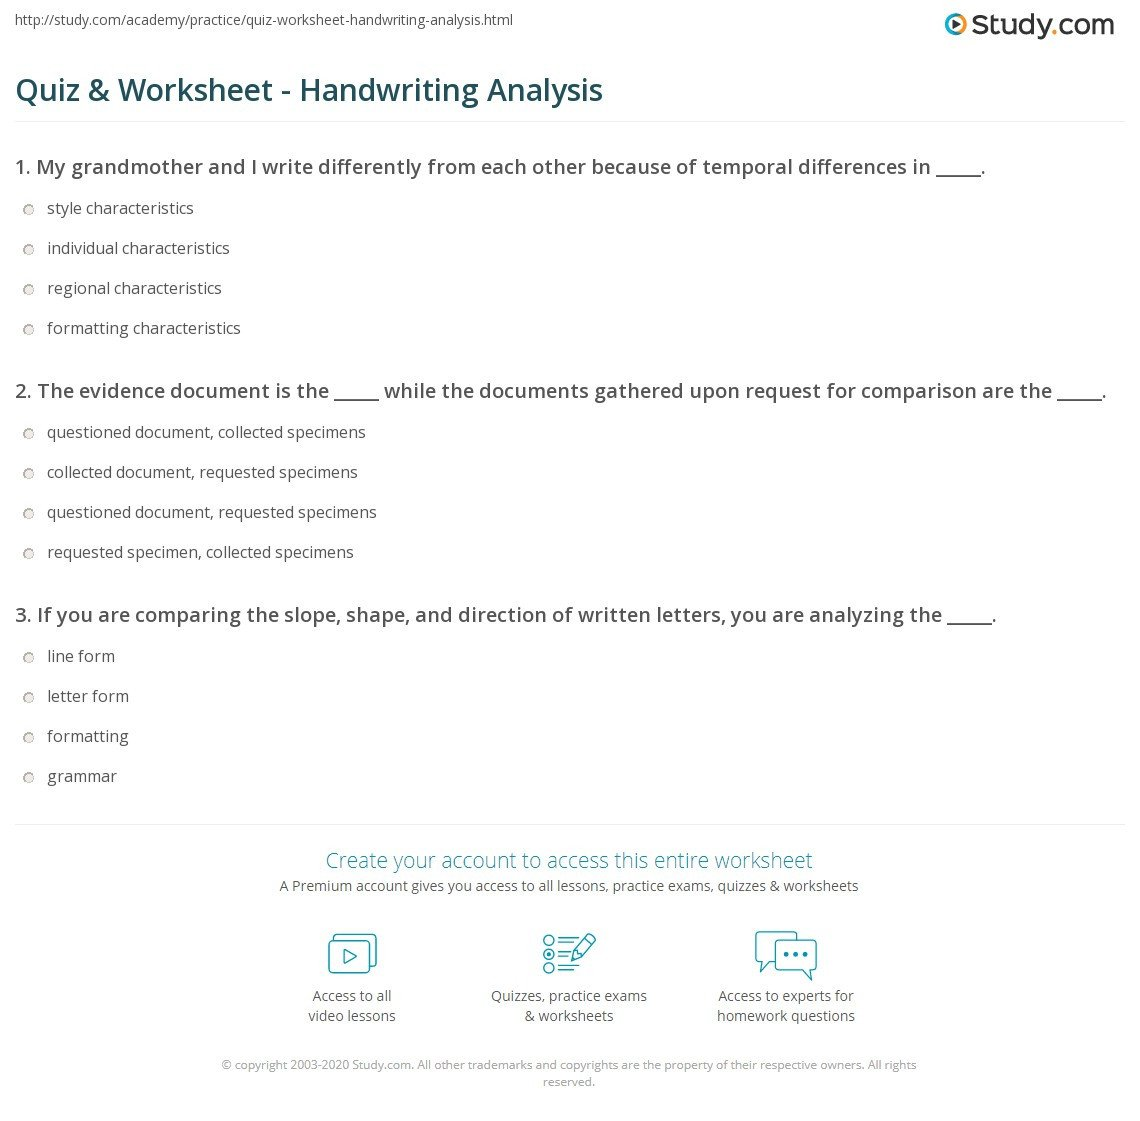 Handwriting Analysis Worksheet Quiz & Worksheet Handwriting Analysis